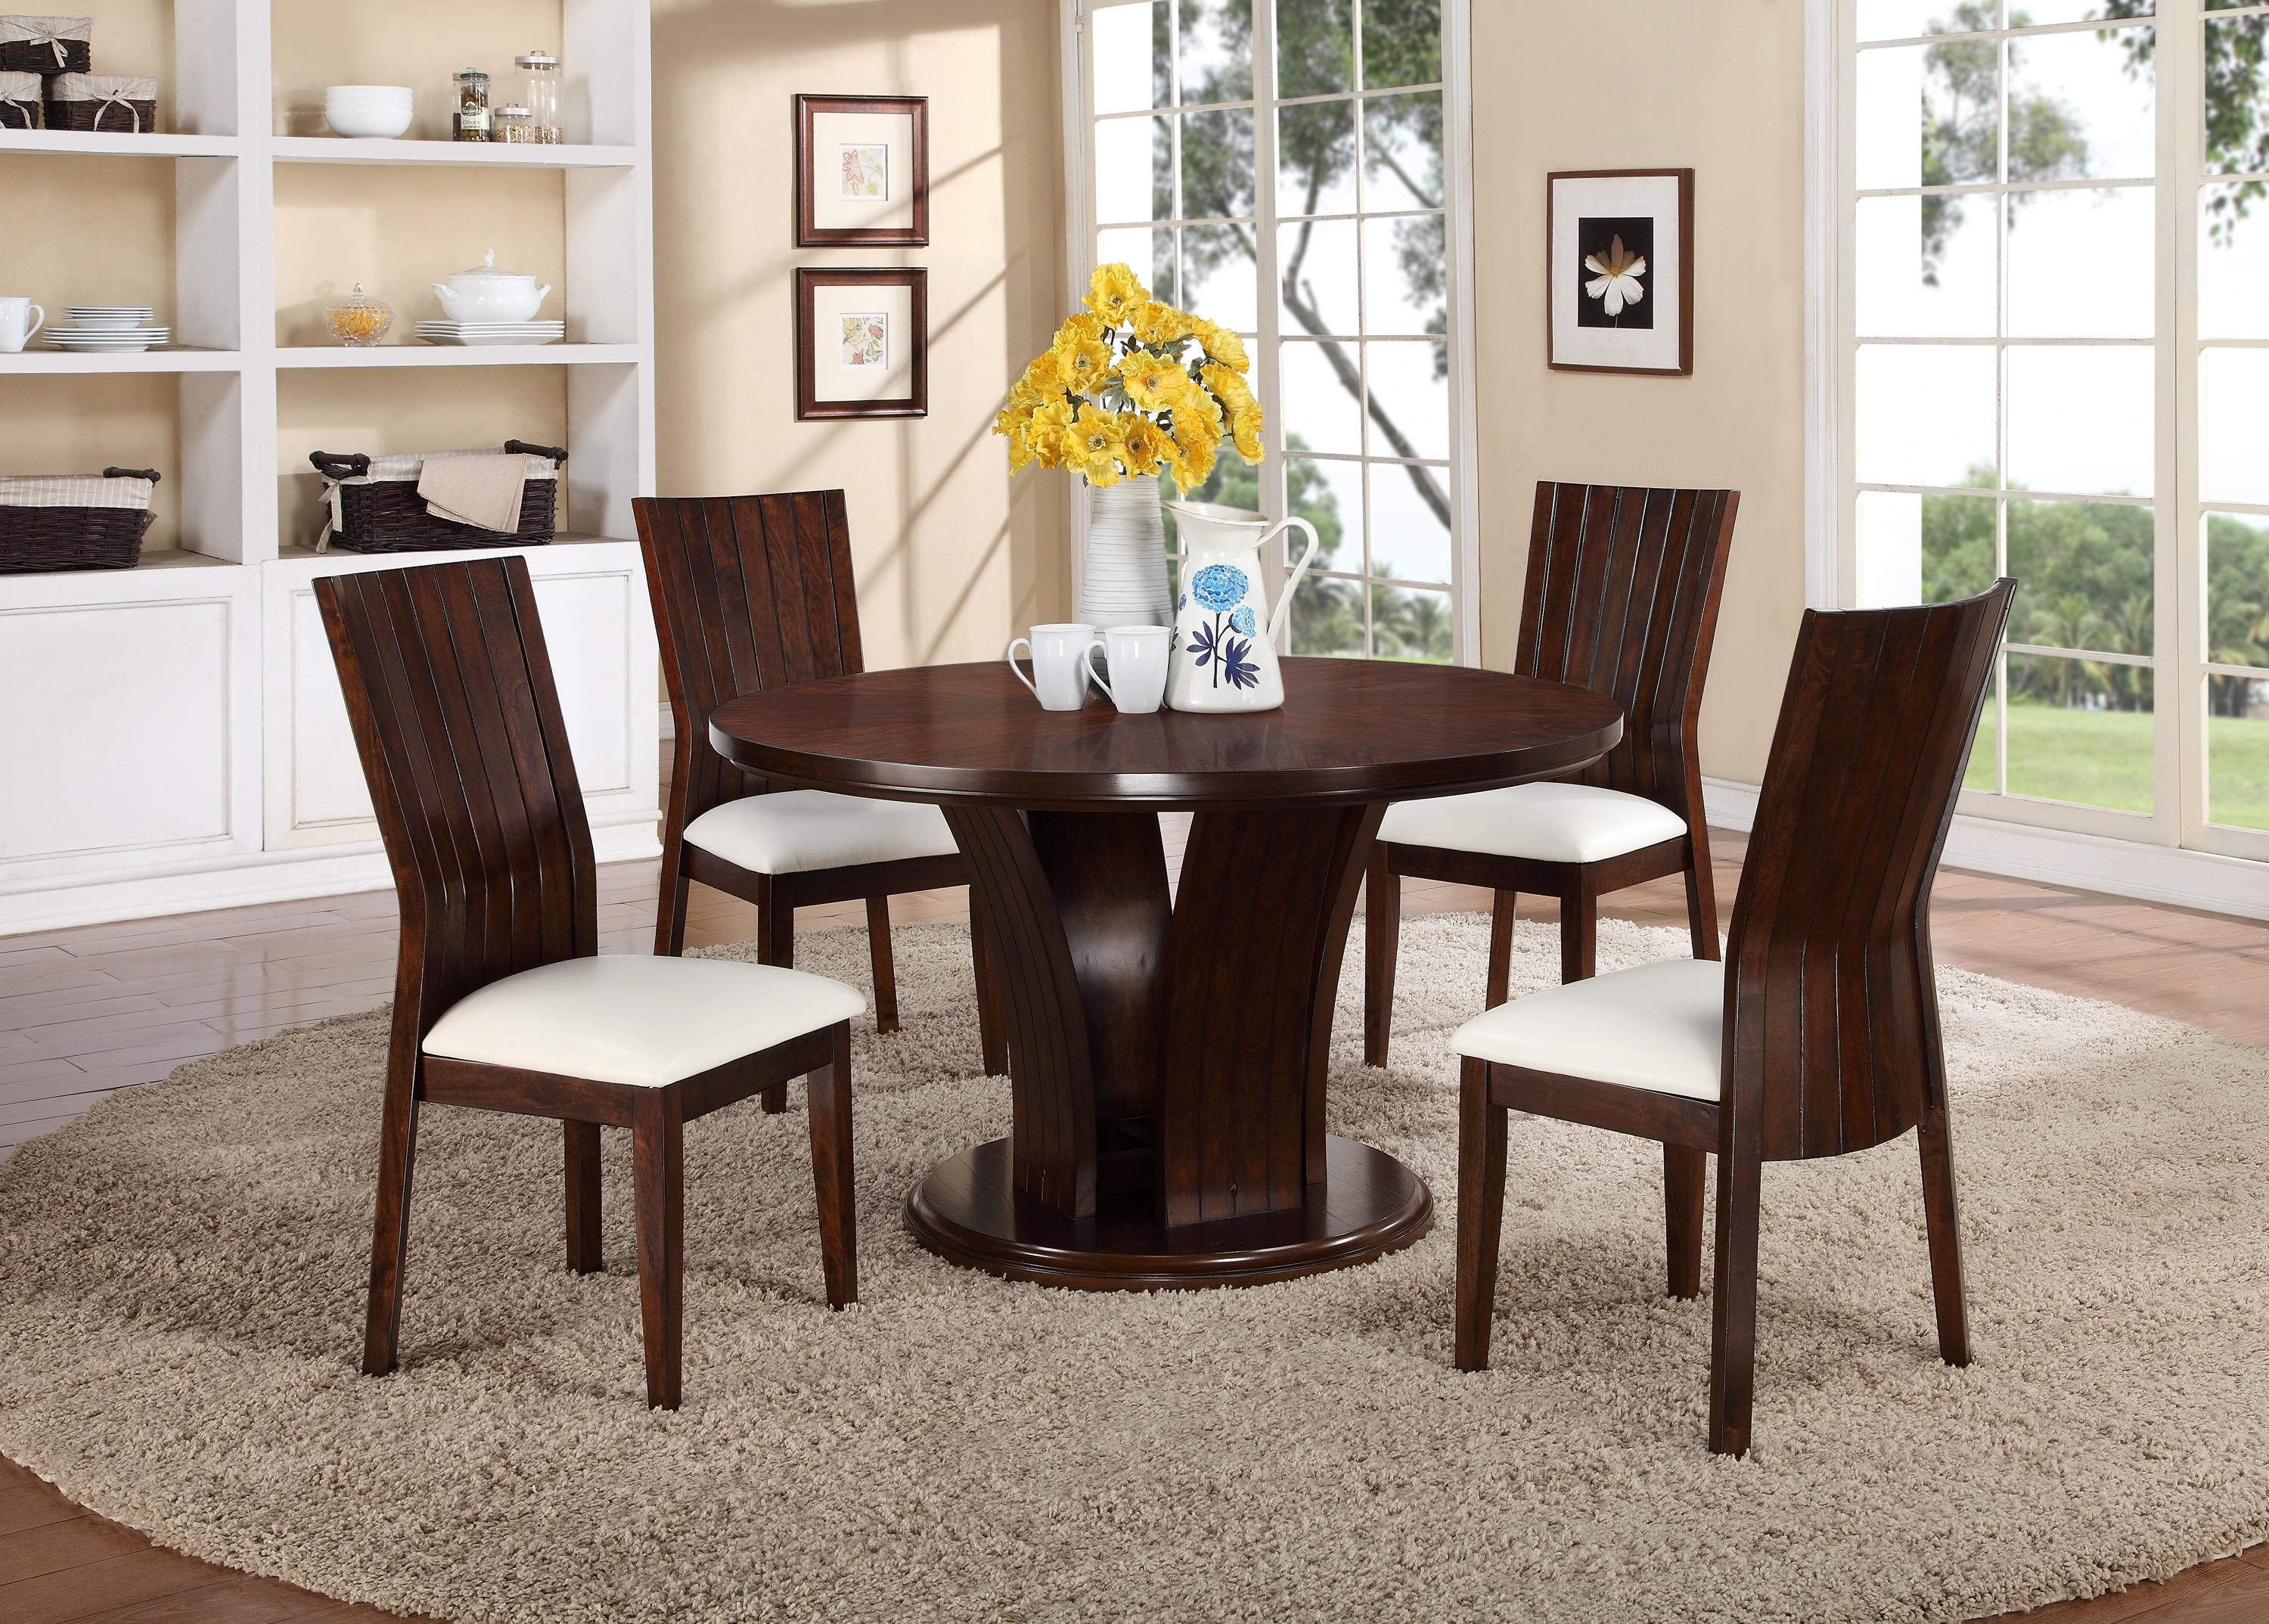 5 Piece Dining Sets crown mark daria 5 piece dining set with round pedestal table and